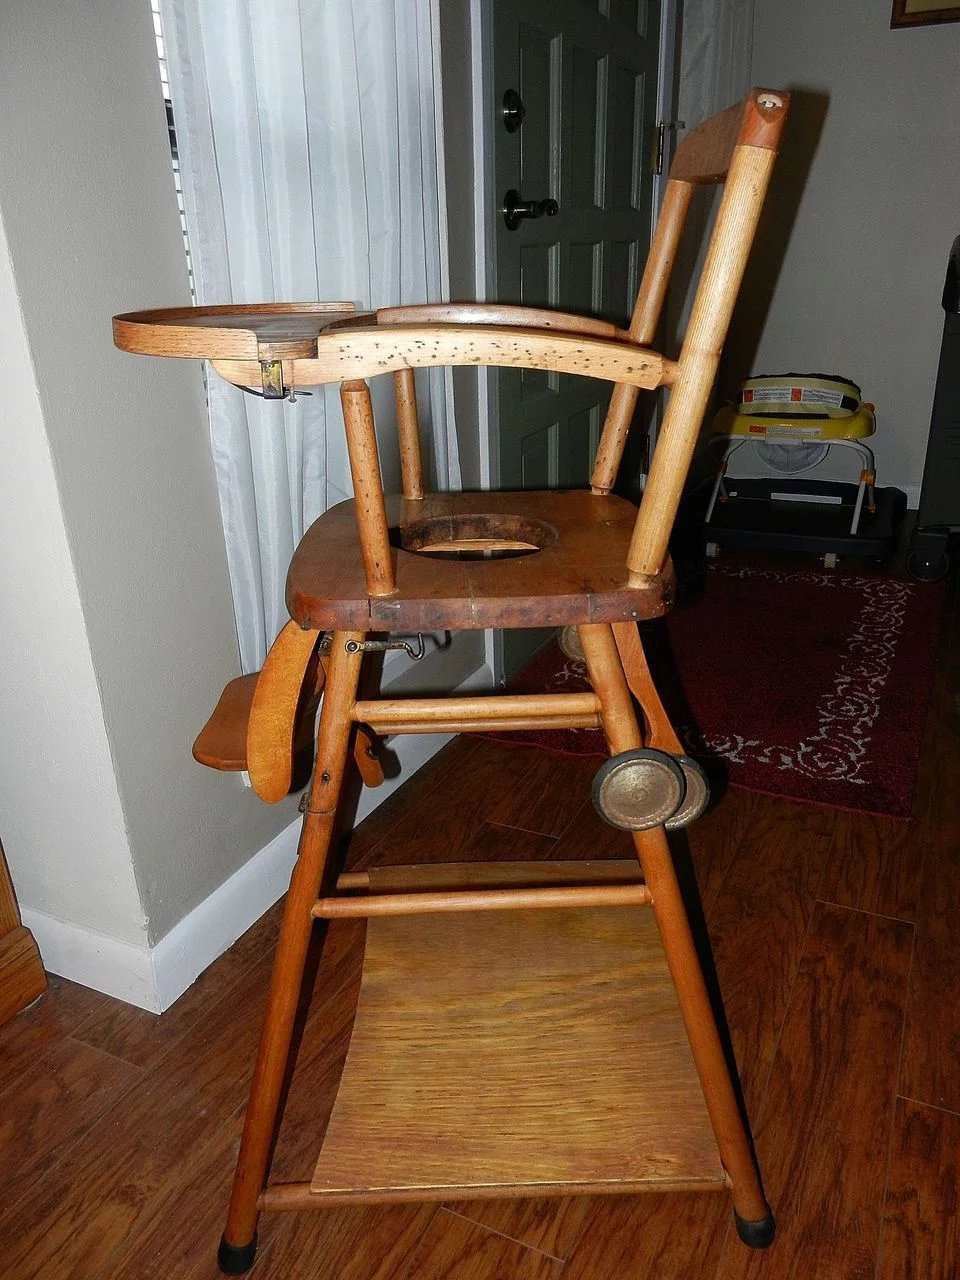 Click to expand - Vintage Wooden High Chair, Potty Chair And Play Chair In One : My